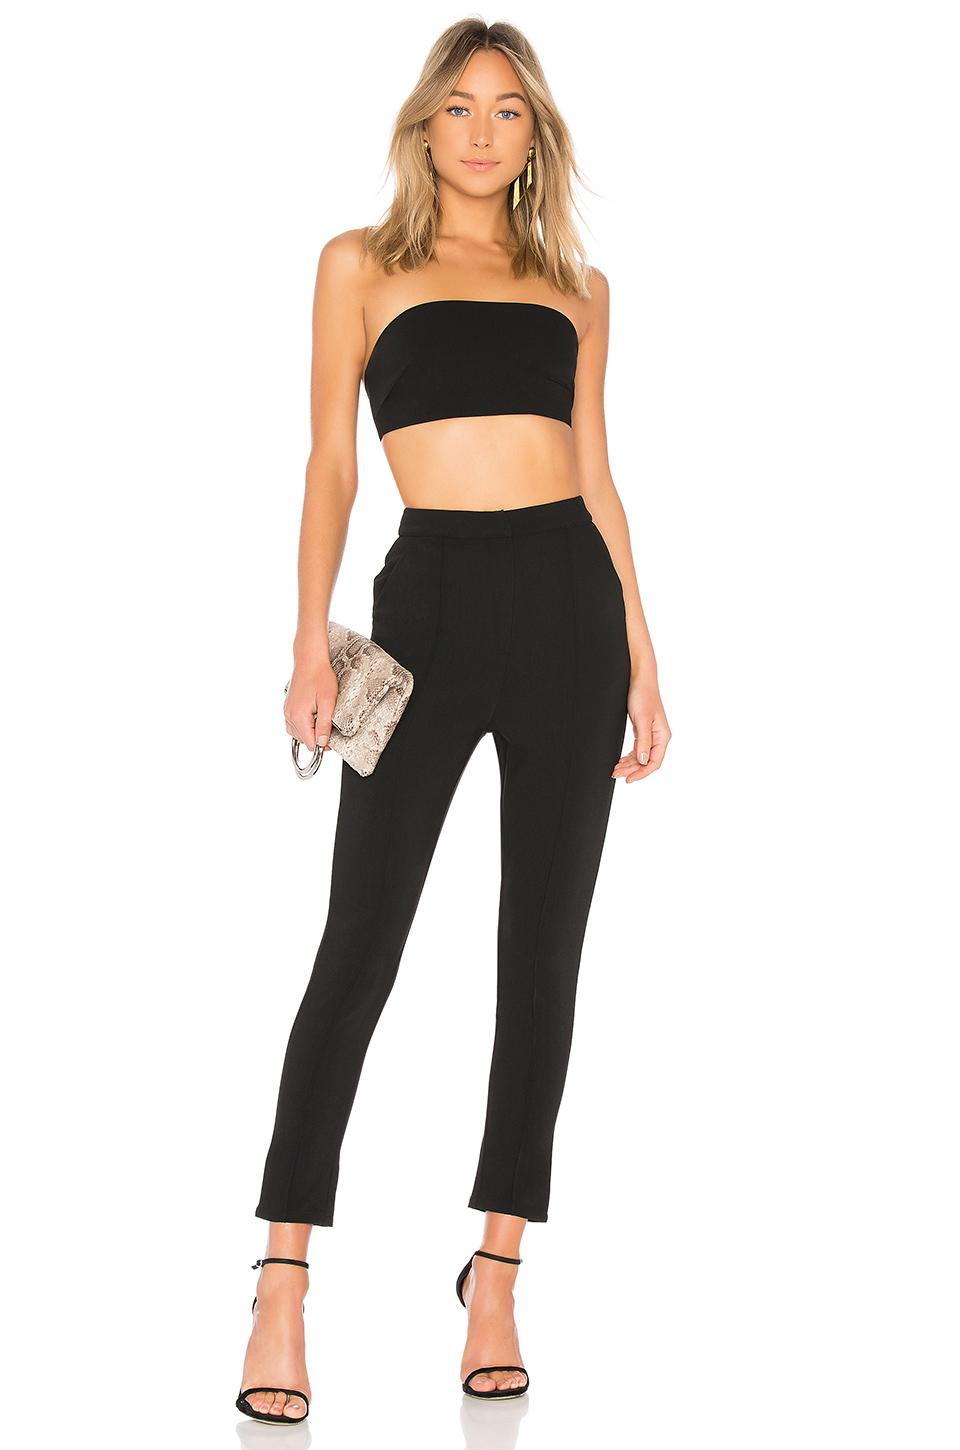 By The Way. Remy Bandeau Pant Set In Black